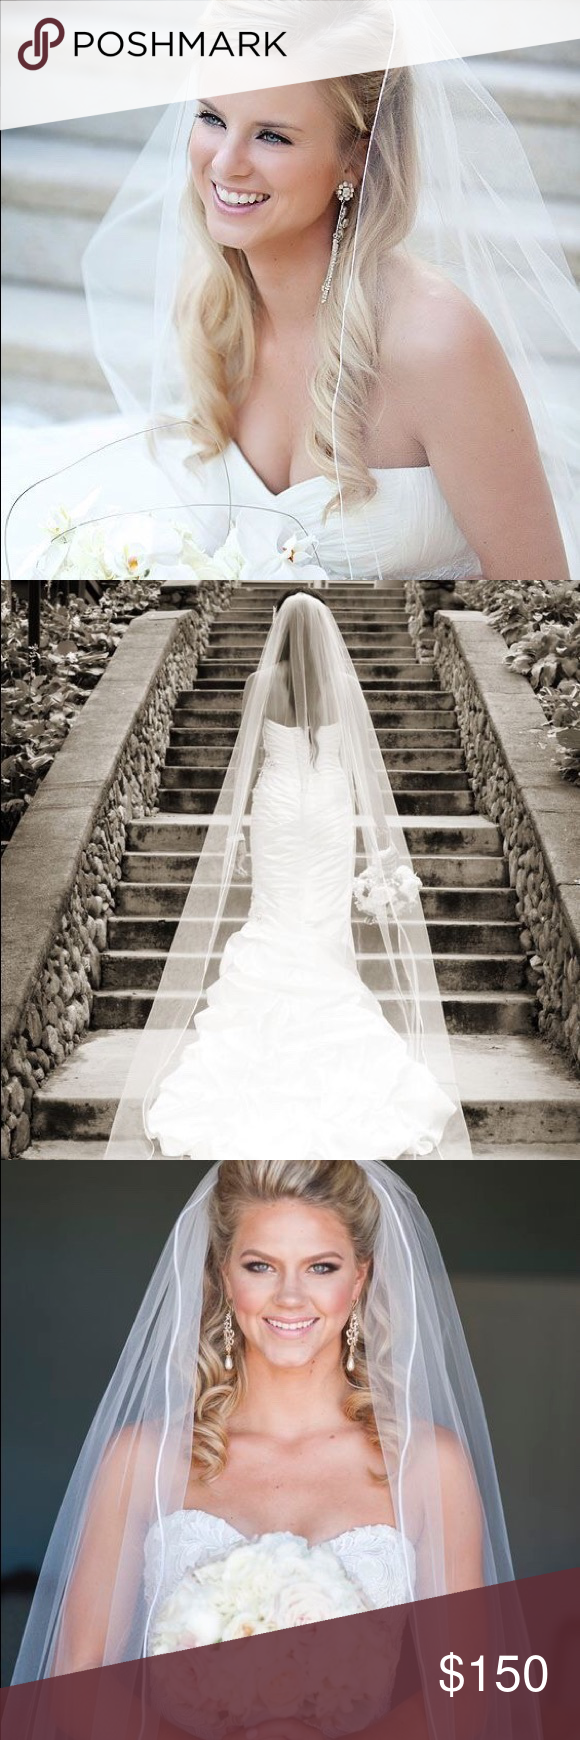 Classic Cathedral Length Wedding Veil For sale classic